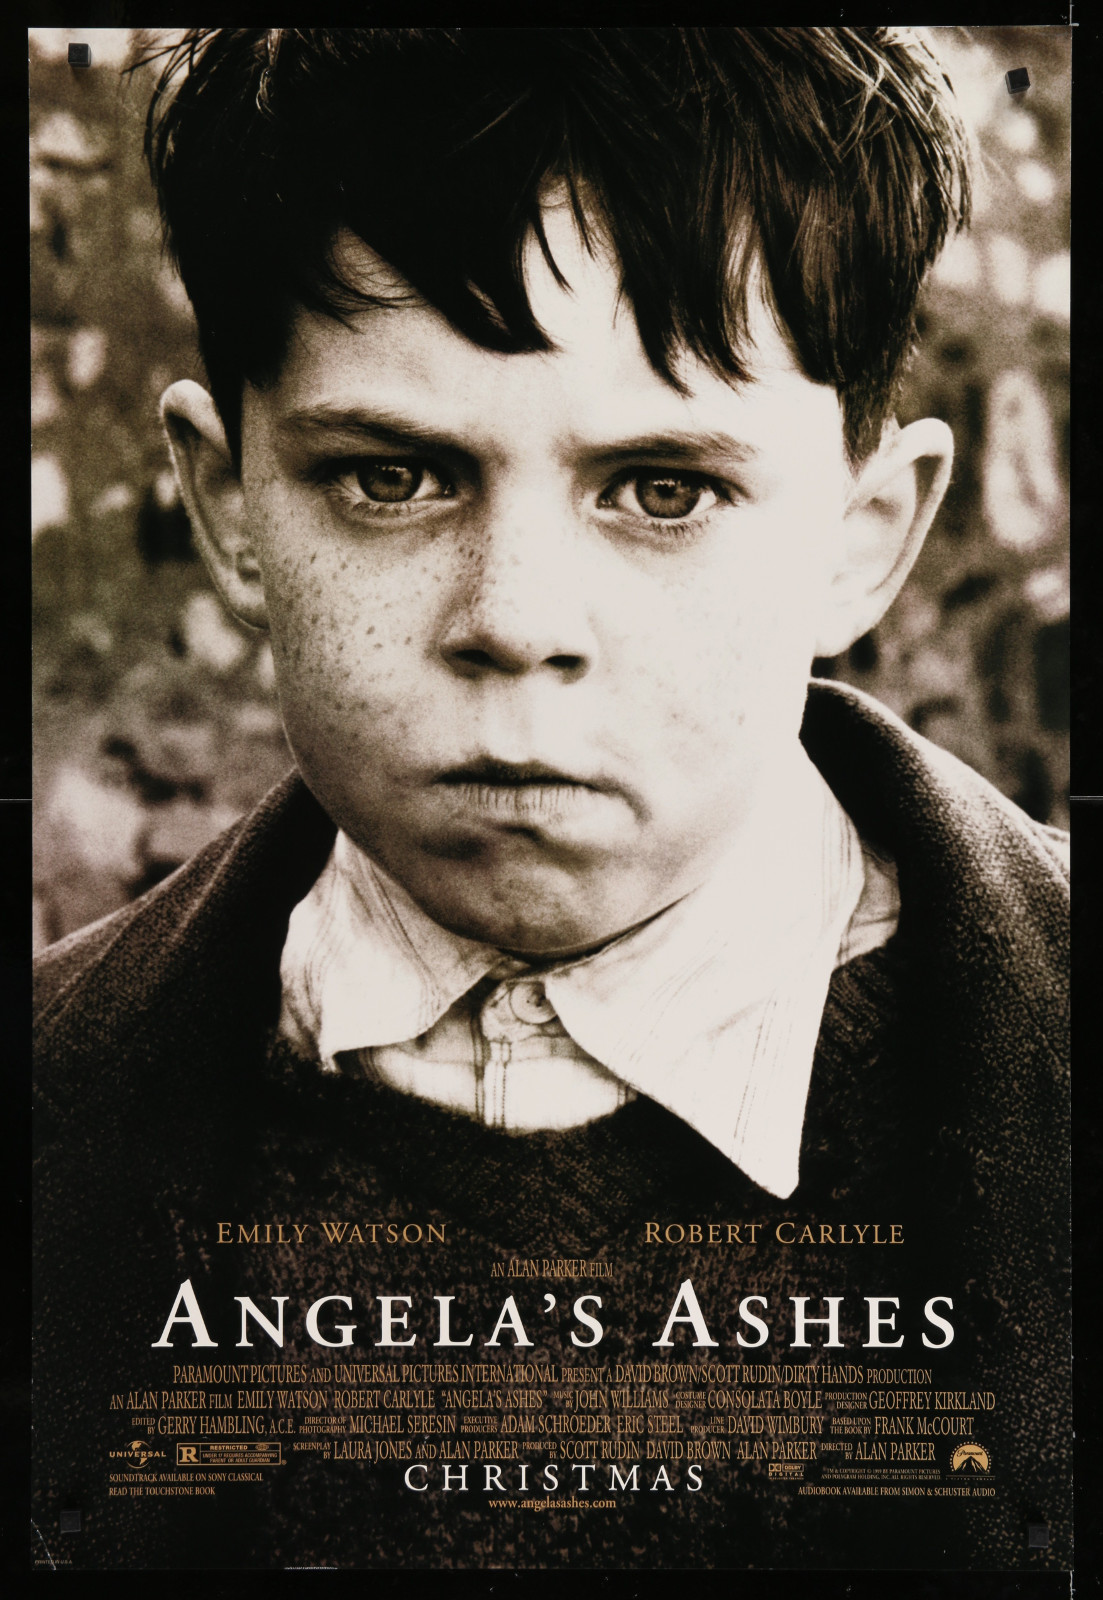 Angela'S Ashes 2A393 A Part Of A Lot 23 Unfolded Mostly Double-Sided 27X40 One-Sheets '90S Great Movie Images!